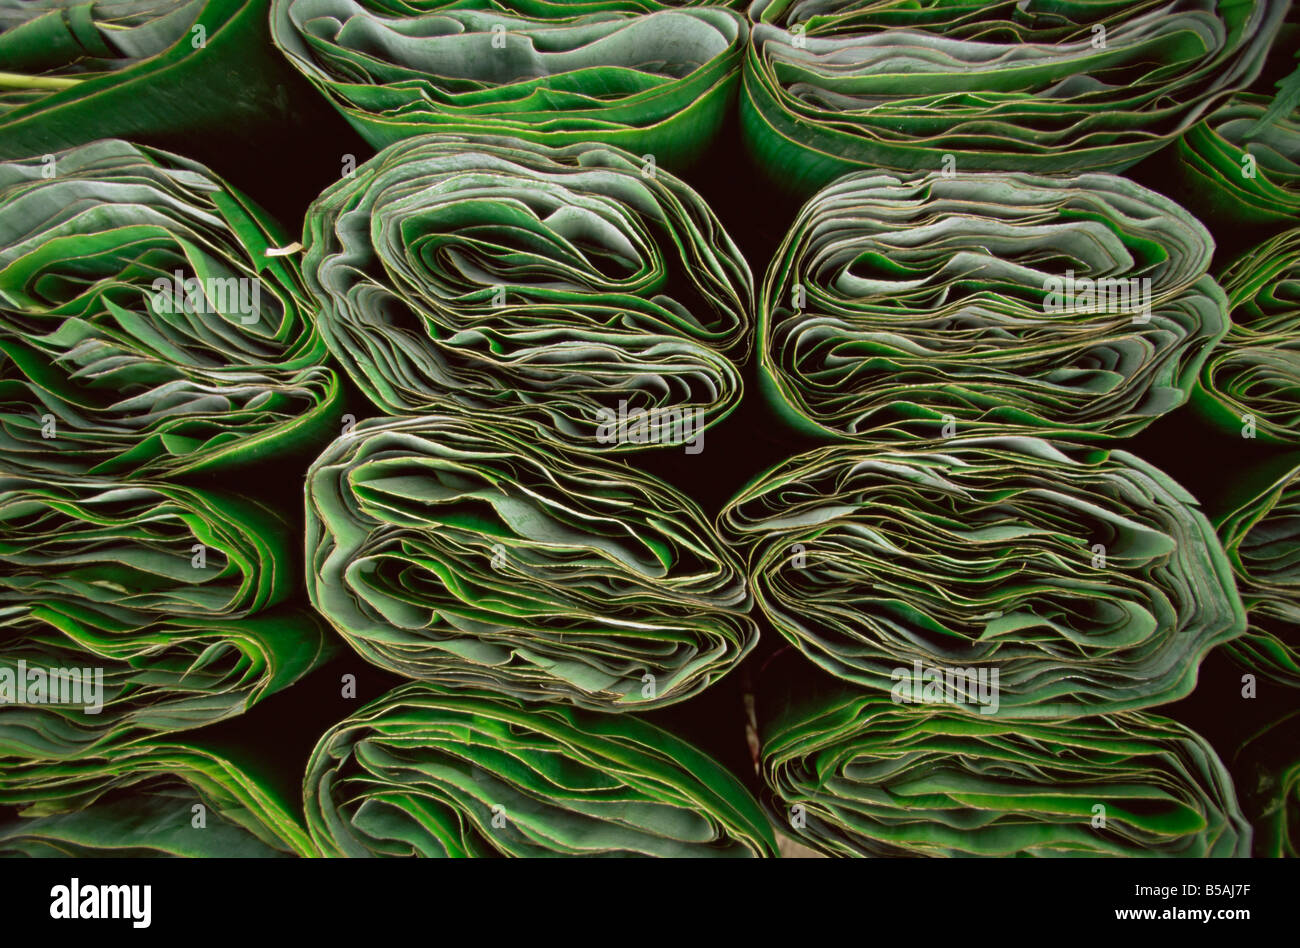 Tamale wrappers, Mexico, North America - Stock Image